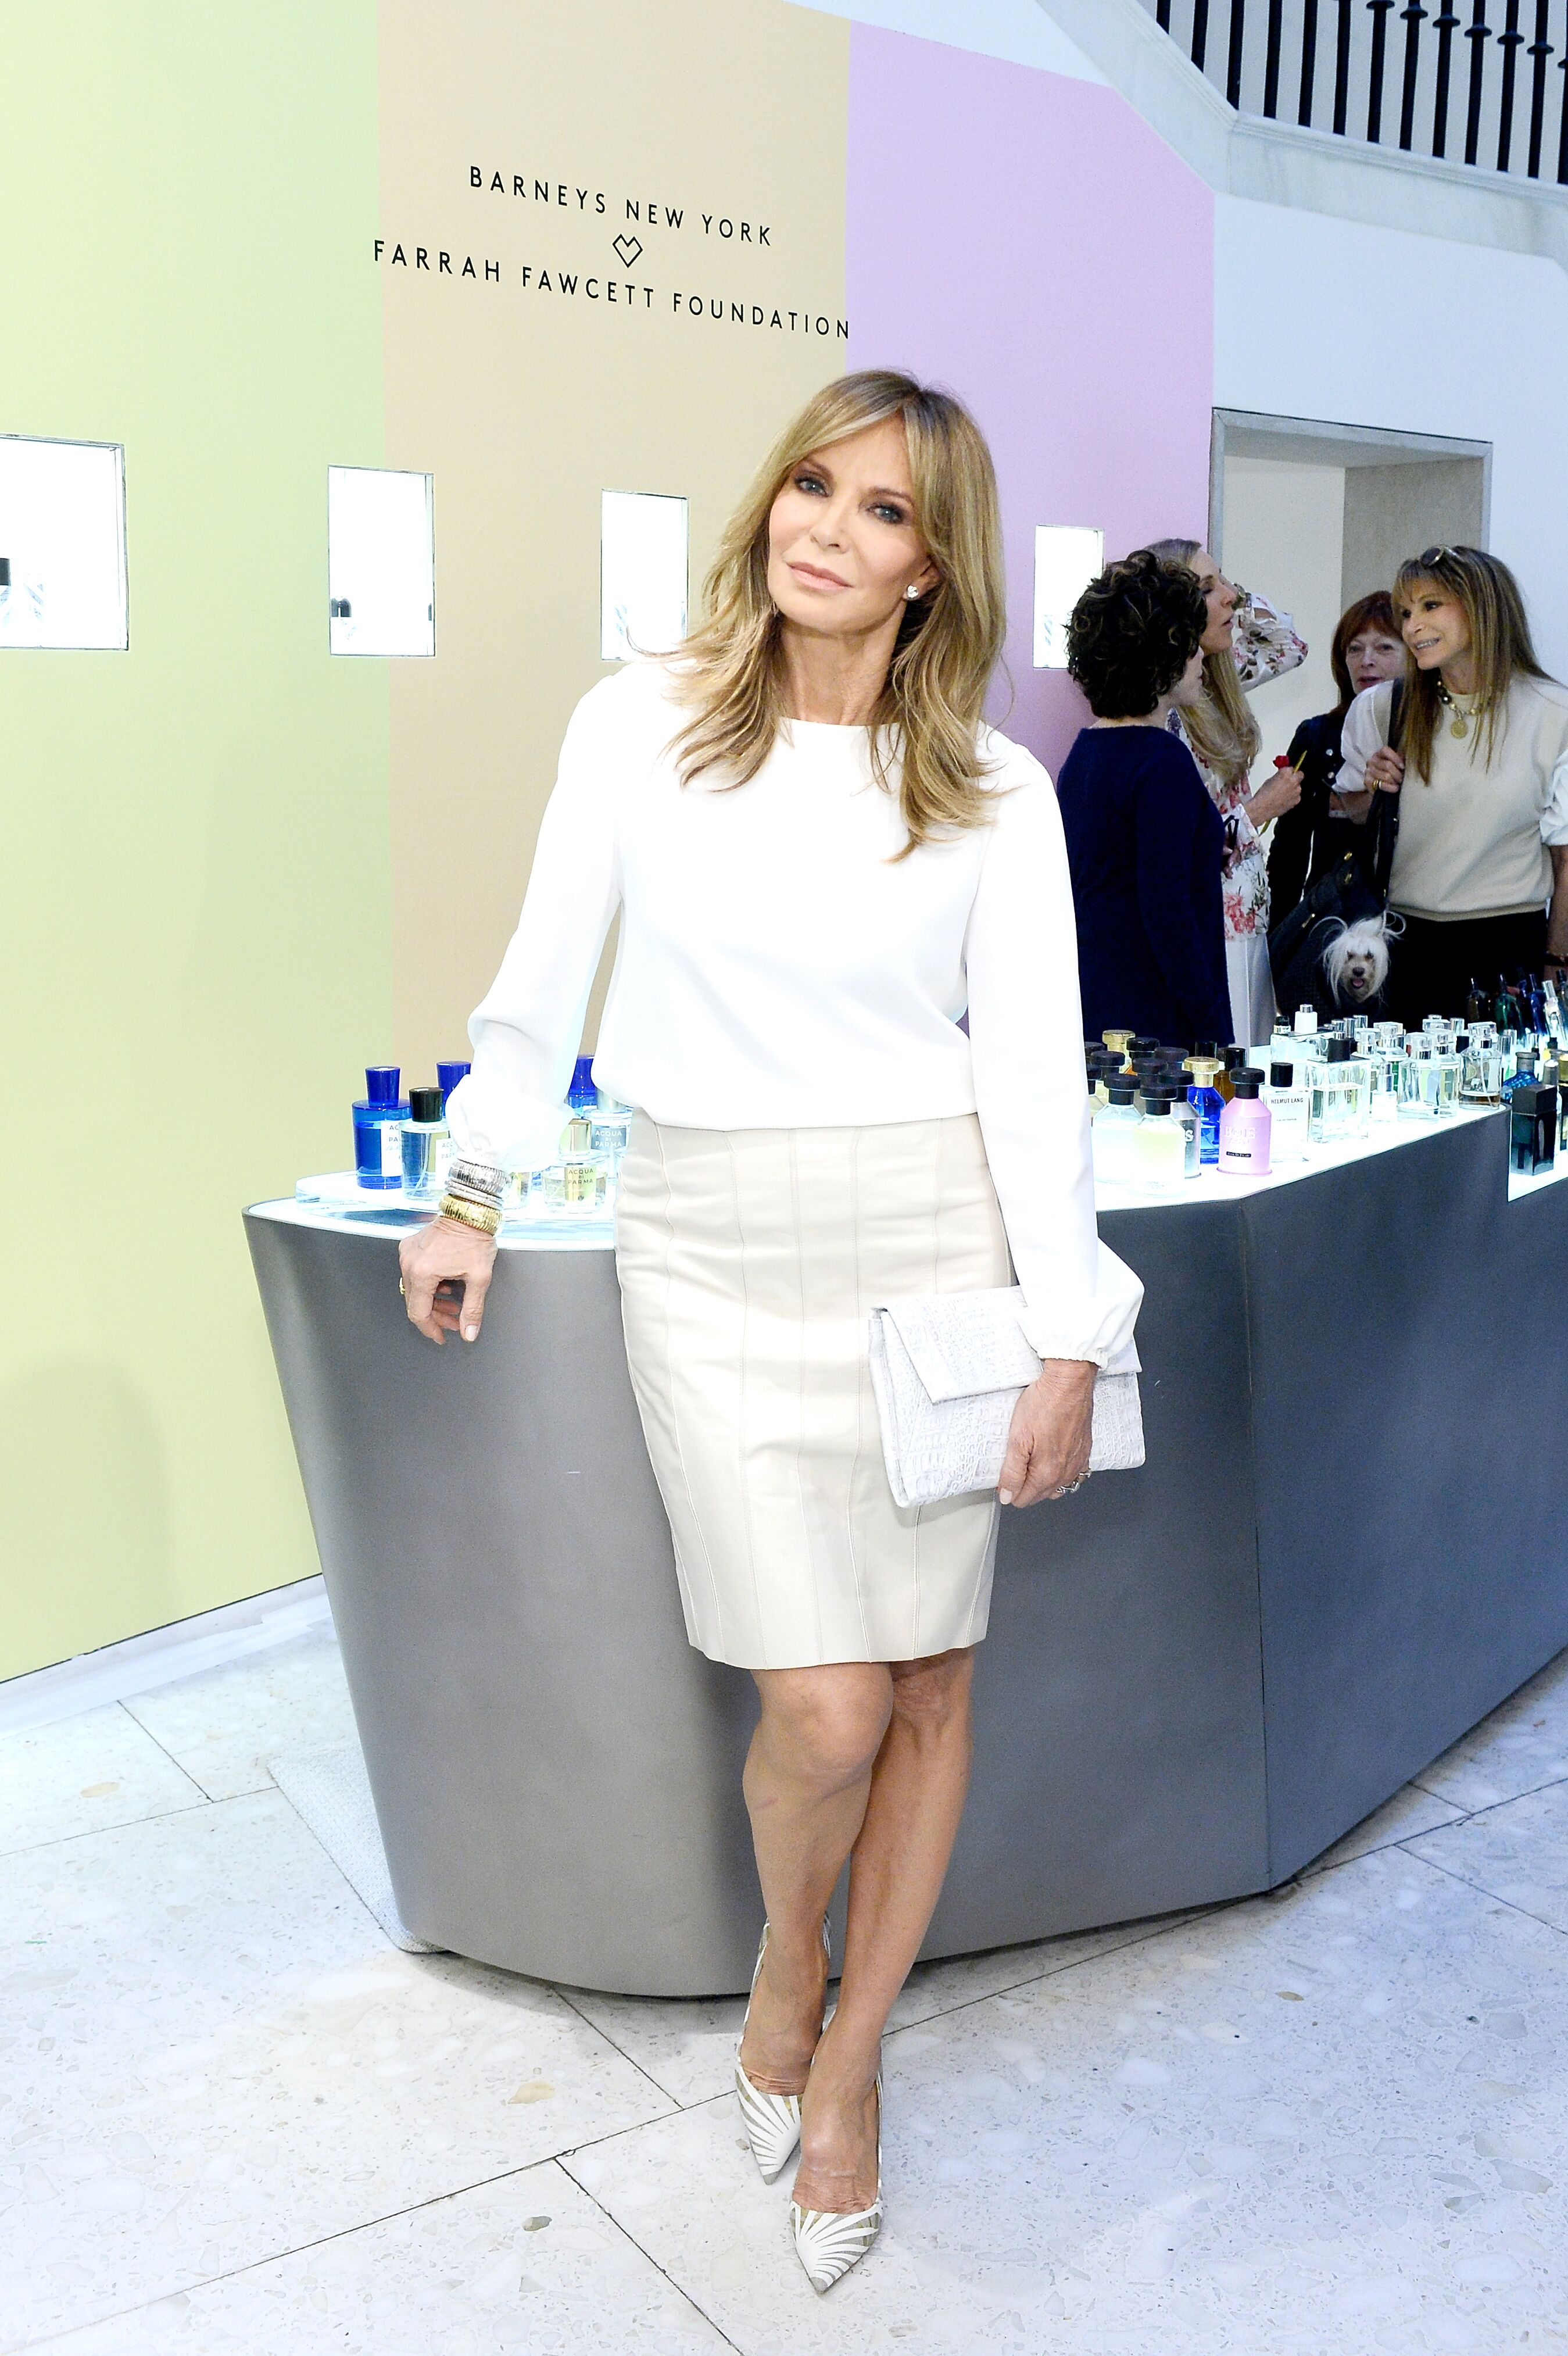 Jaclyn Smith attends Barneys New York Celebrates the Farrah Fawcett Foundation at Barneys New York Beverly Hills on May 23, 2018 in Beverly Hills, California. | Source: Getty Images